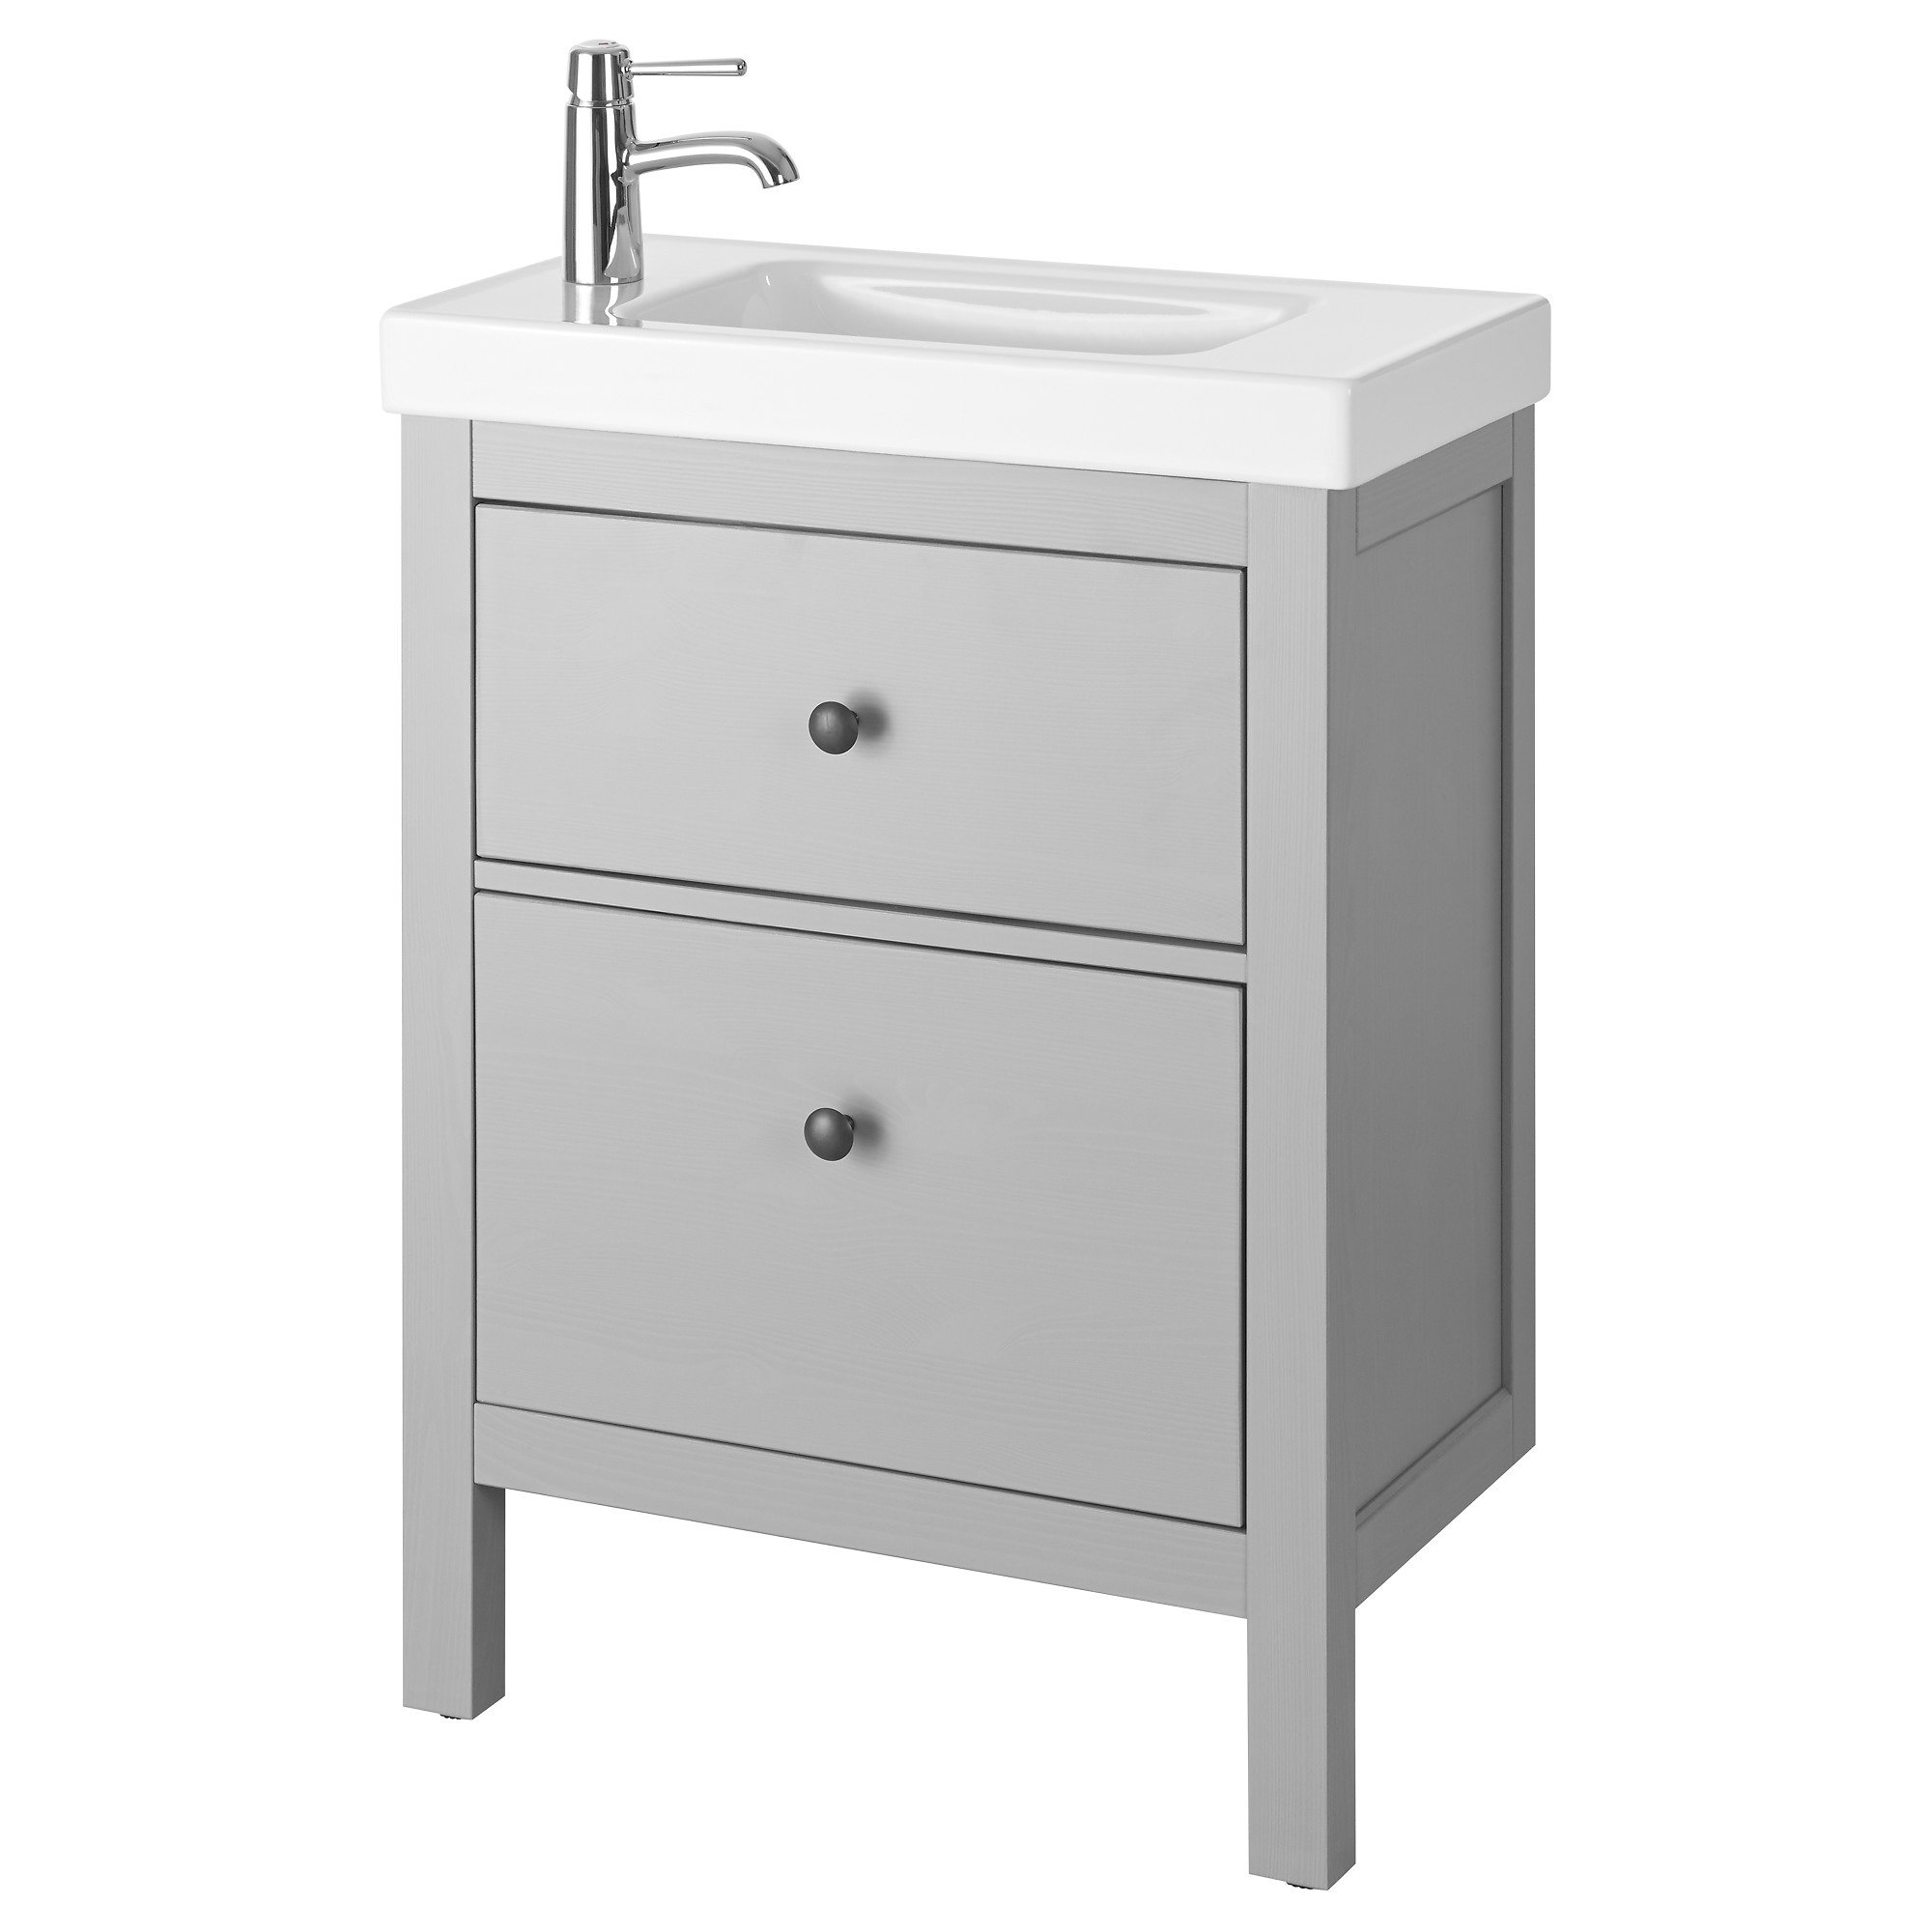 Bathroom sink dimensions mm - Hemnes Hagaviken Sink Cabinet With 2 Drawers Gray Width 24 3 4